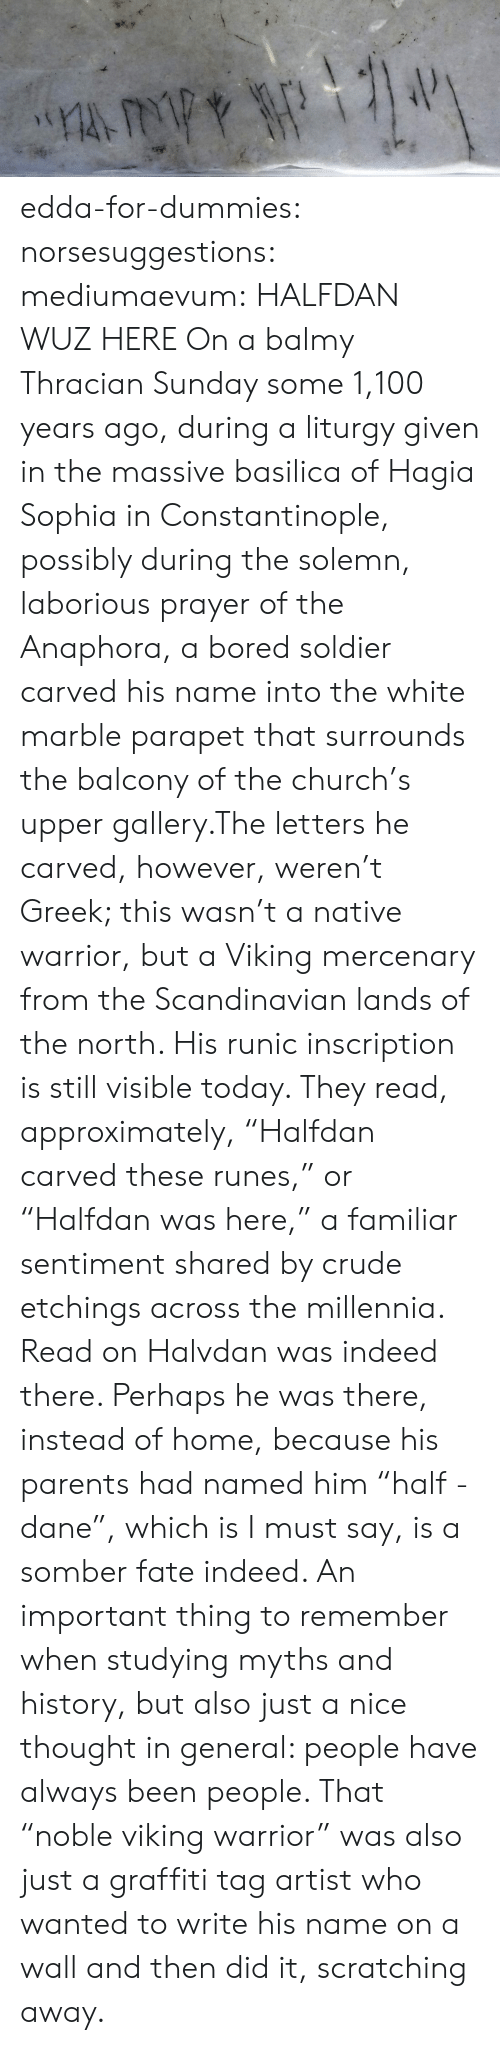 """solemn: edda-for-dummies: norsesuggestions:  mediumaevum:  HALFDAN WUZ HERE On a balmy Thracian Sunday some 1,100 years ago, during a liturgy given in the massive basilica of Hagia Sophia in Constantinople, possibly during the solemn, laborious prayer of the Anaphora, a bored soldier carved his name into the white marble parapet that surrounds the balcony of the church's upper gallery.The letters he carved, however, weren't Greek; this wasn't a native warrior, but a Viking mercenary from the Scandinavian lands of the north. His runic inscription is still visible today. They read, approximately, """"Halfdan carved these runes,"""" or """"Halfdan was here,"""" a familiar sentiment shared by crude etchings across the millennia. Read on  Halvdan was indeed there. Perhaps he was there, instead of home, because his parents had named him """"half - dane"""", which is I must say, is a somber fate indeed.   An important thing to remember when studying myths and history, but also just a nice thought in general: people have always been people. That """"noble viking warrior"""" was also just a graffiti tag artist who wanted to write his name on a wall and then did it, scratching away."""